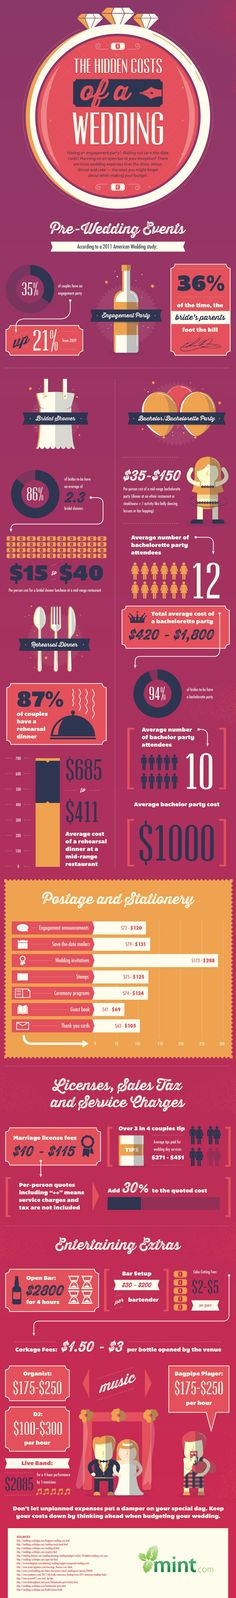 I never knew I could save so much money. Great infographic! 20 Hidden Wedding Costs You Weren't Anticipating